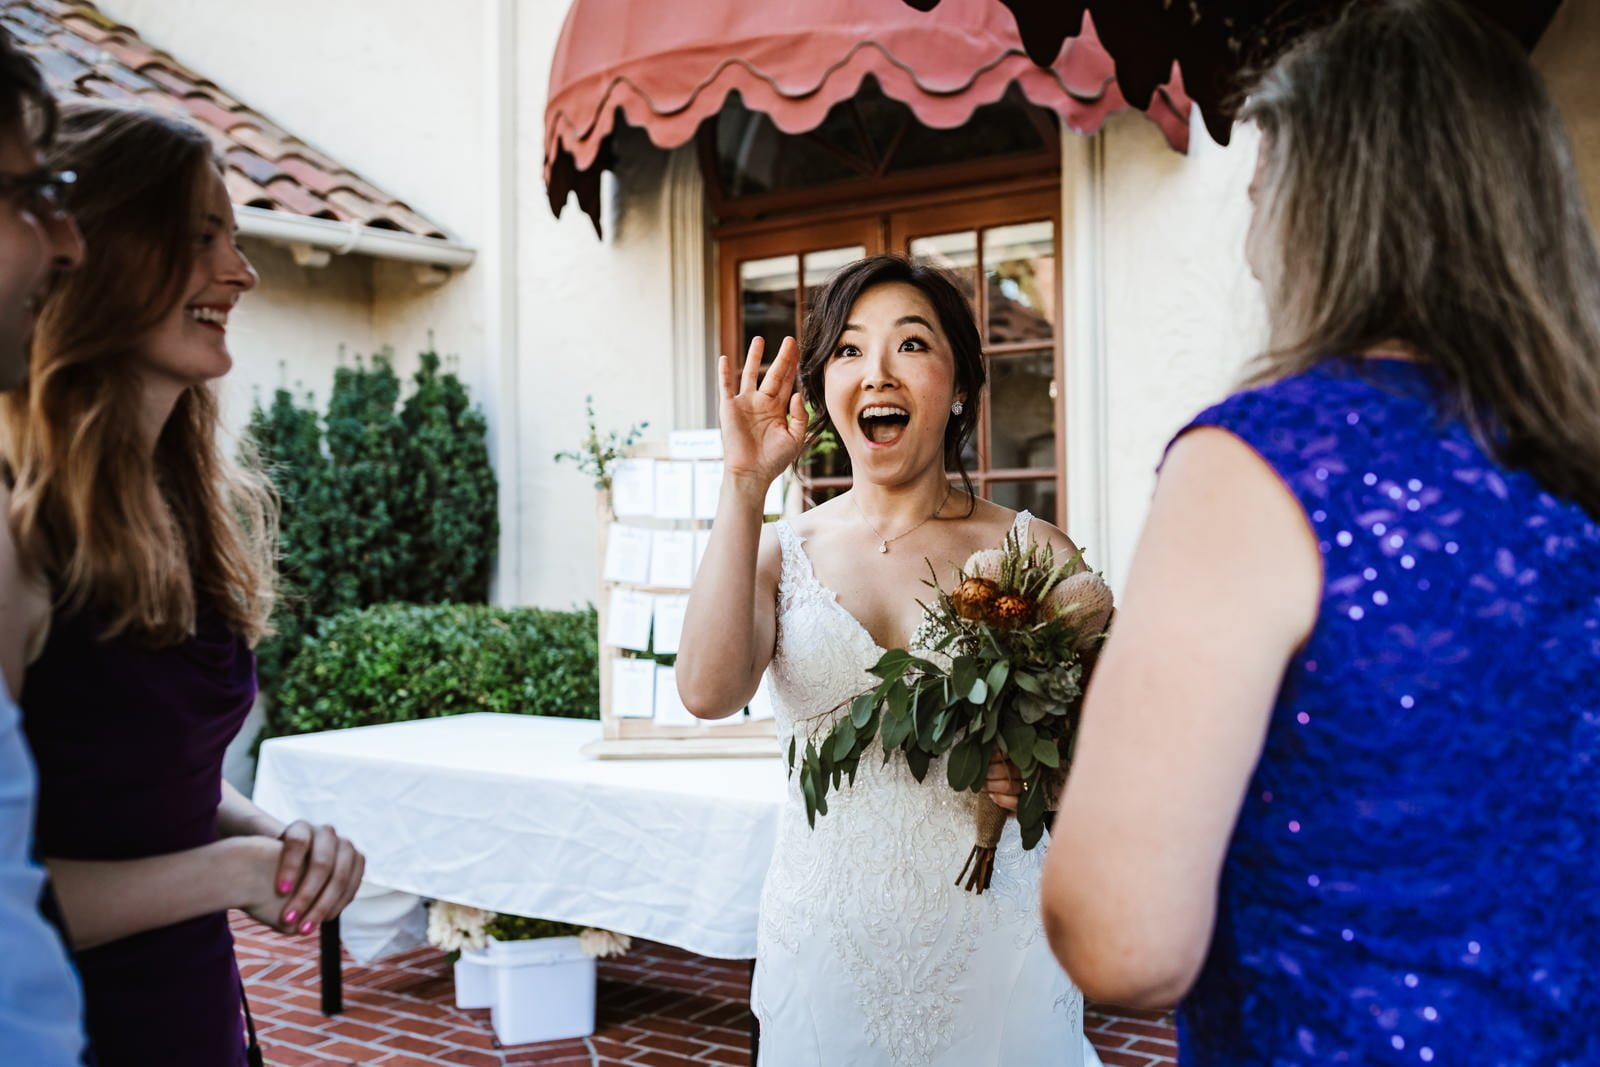 Bride waving to friends